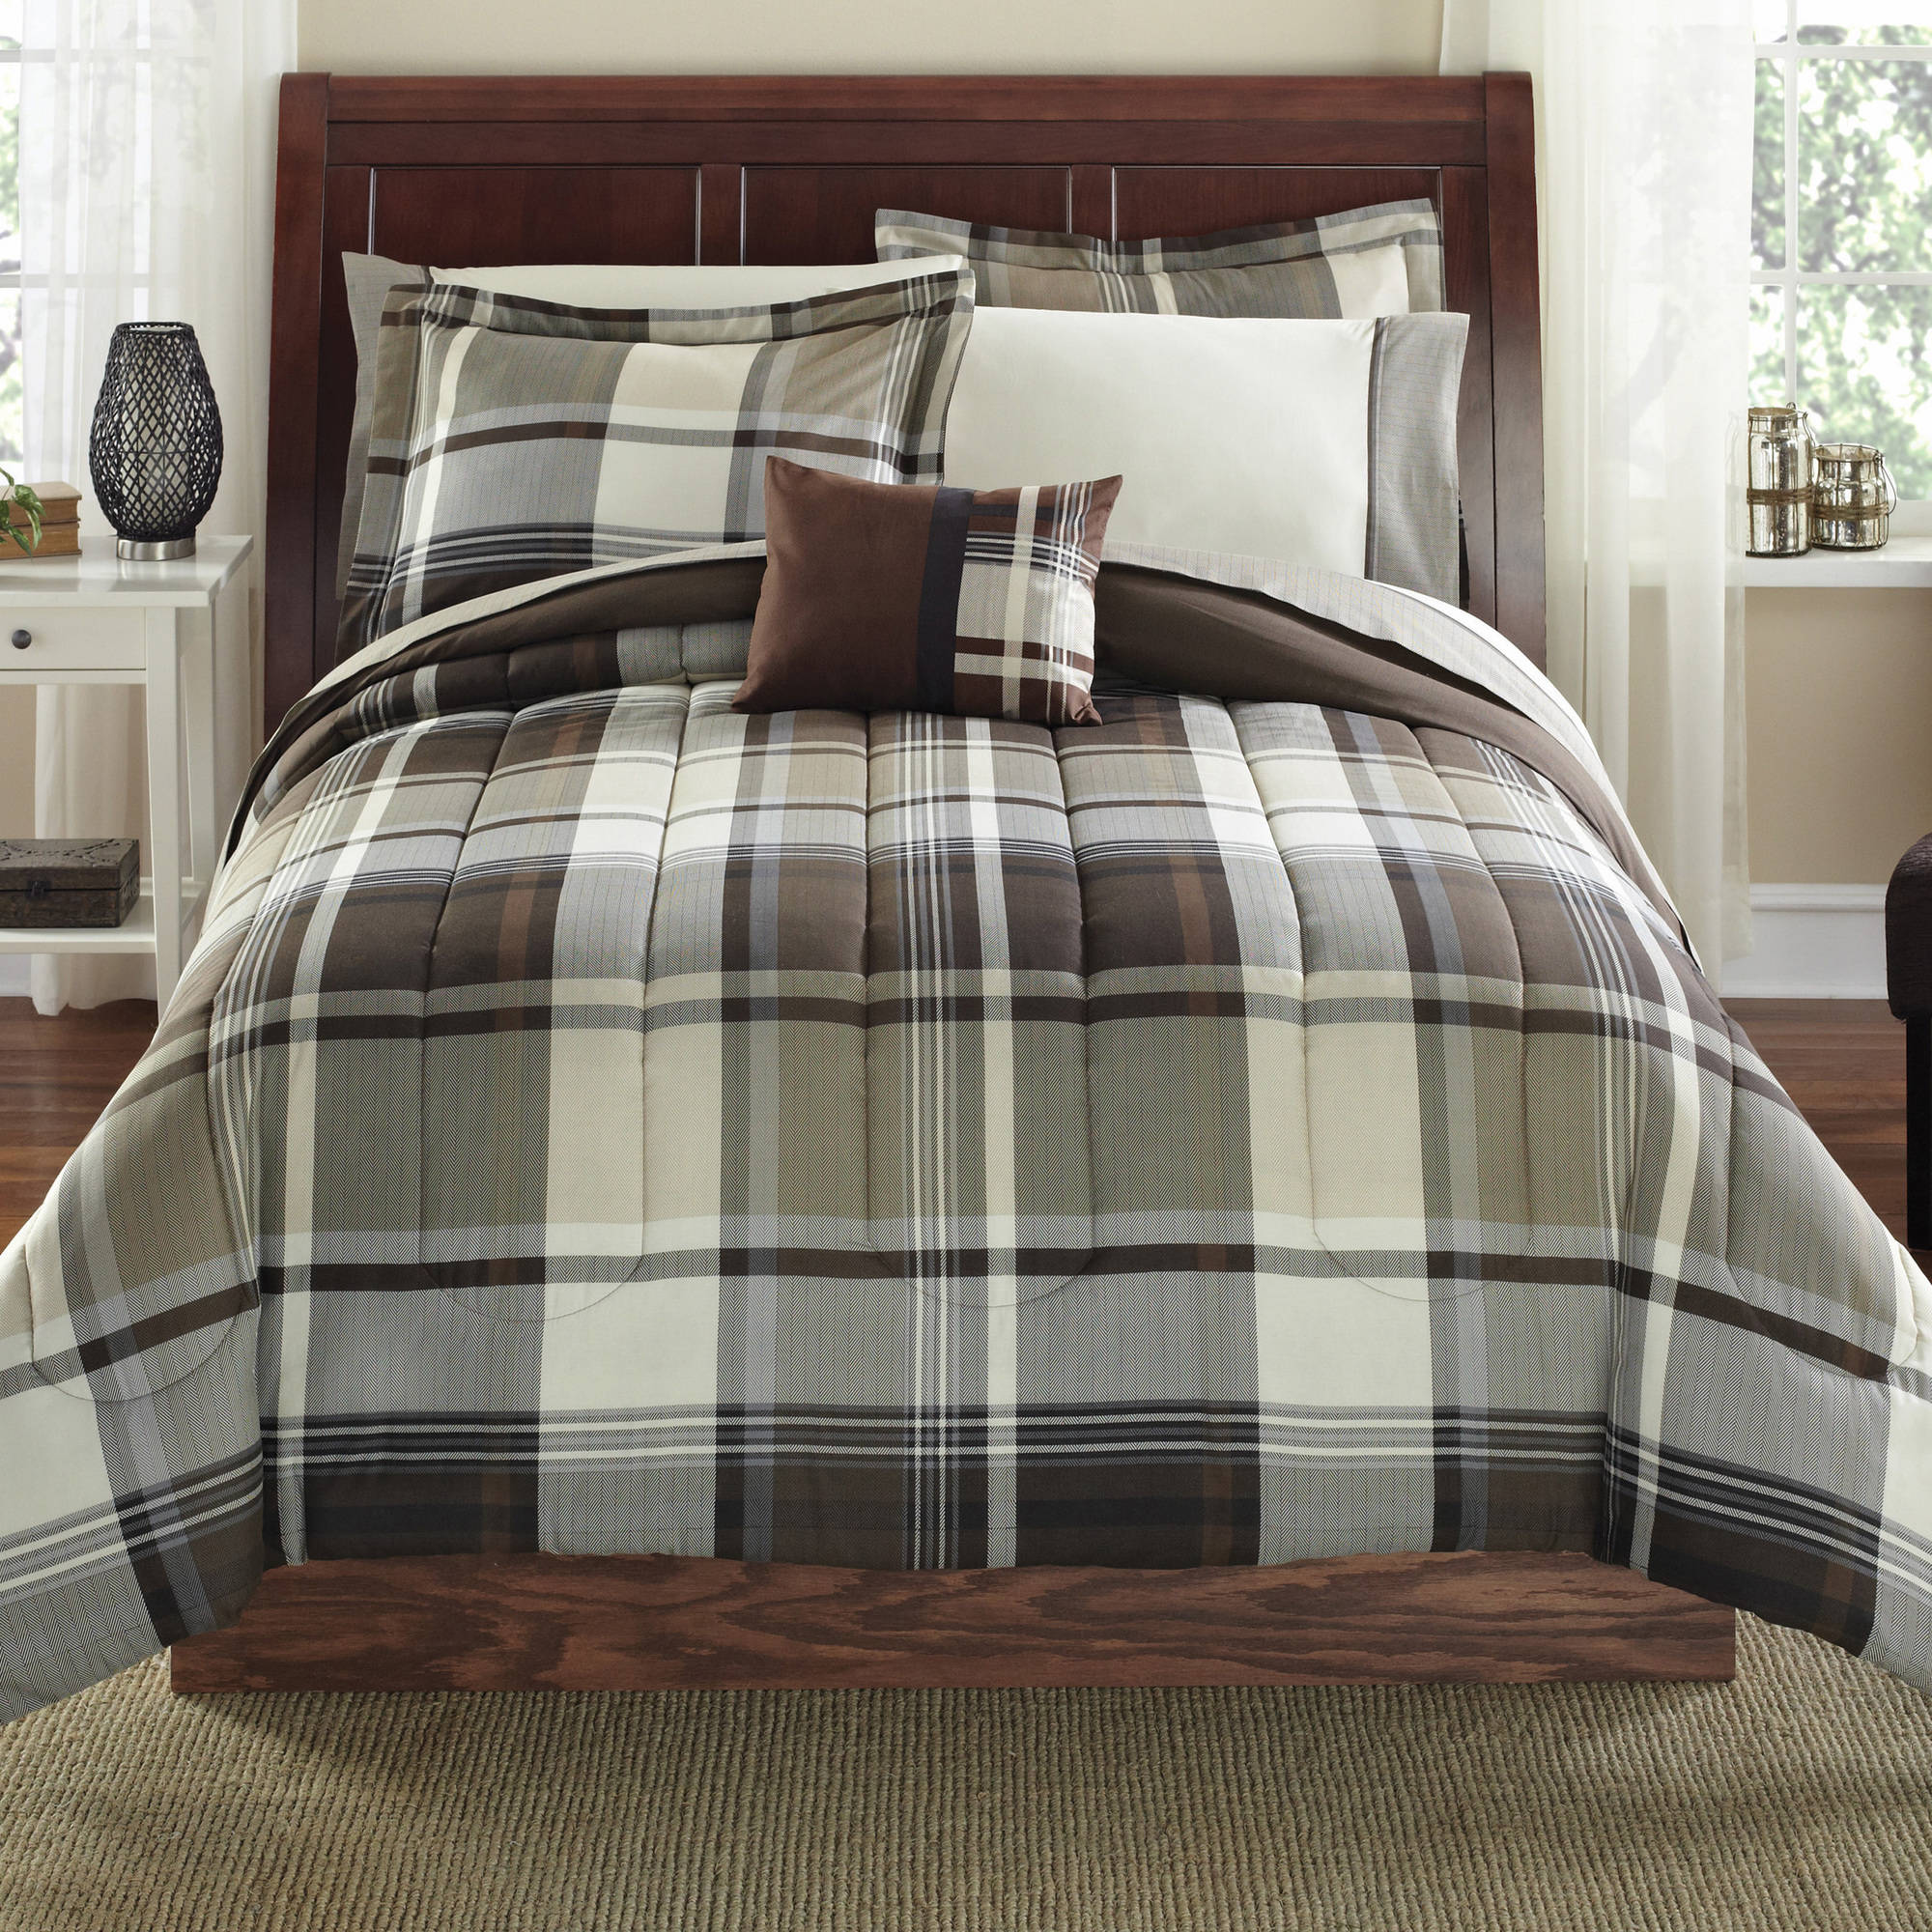 Mainstays bed in a bag bedding comforter set brown plaid multiple sizes walmart com